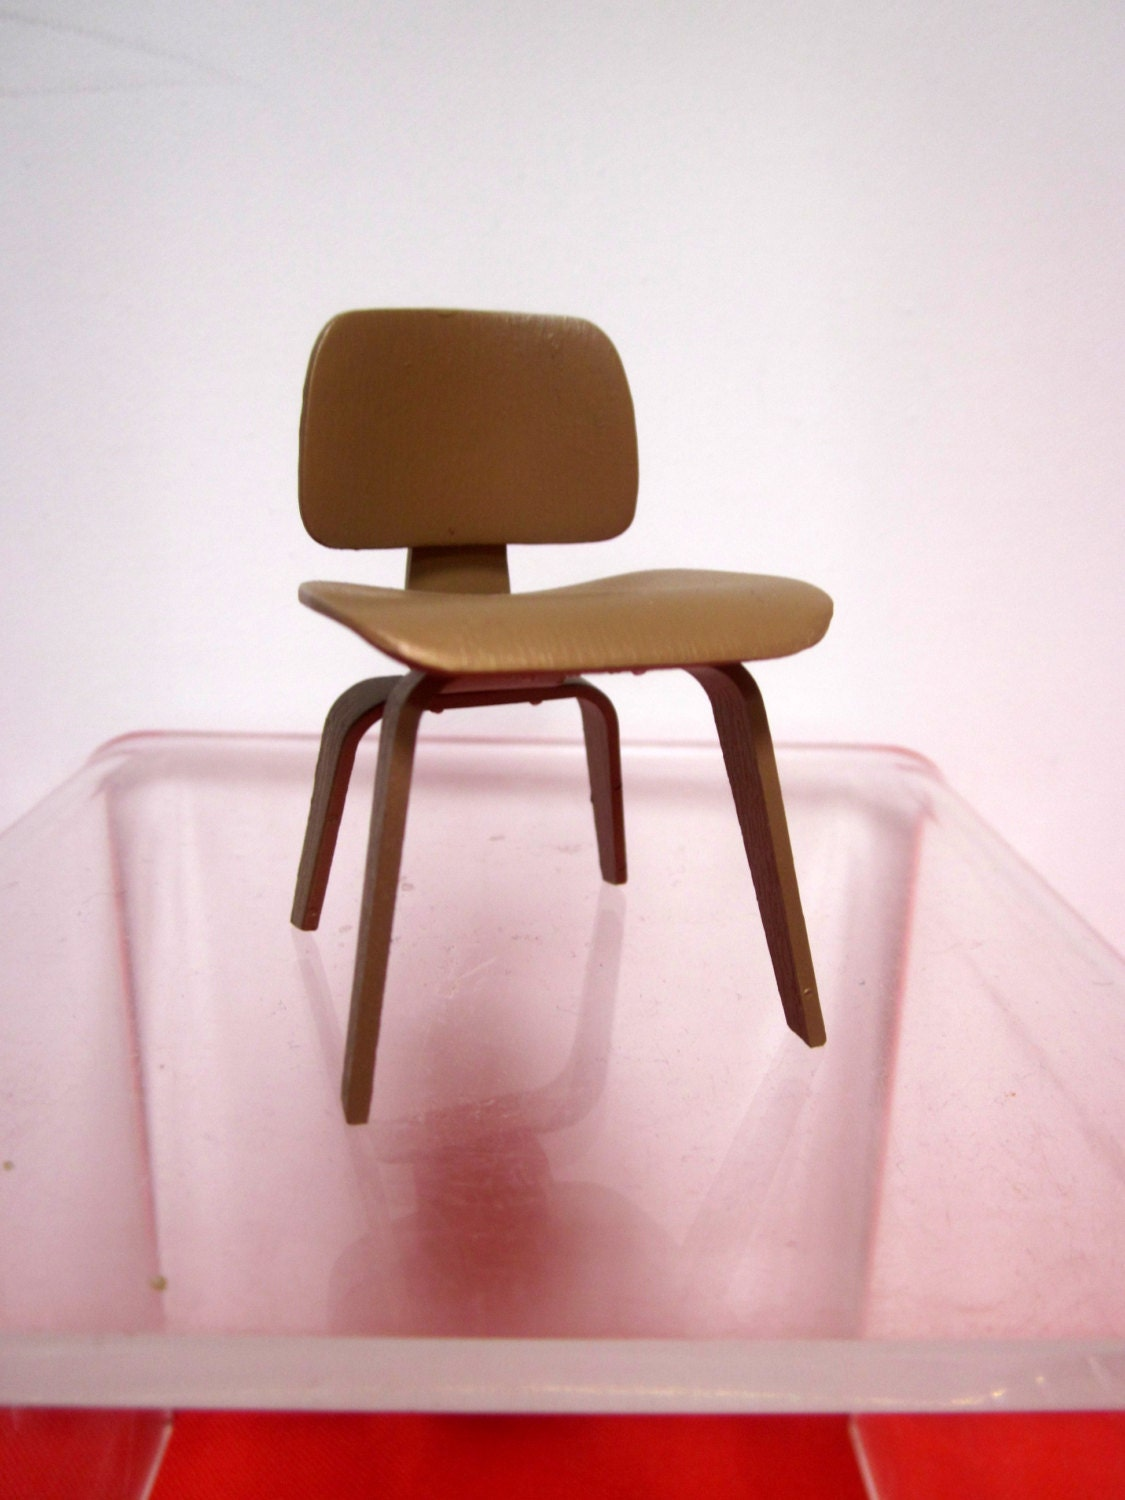 Mini miniature designer chair mid century modern by for Mini designer chairs